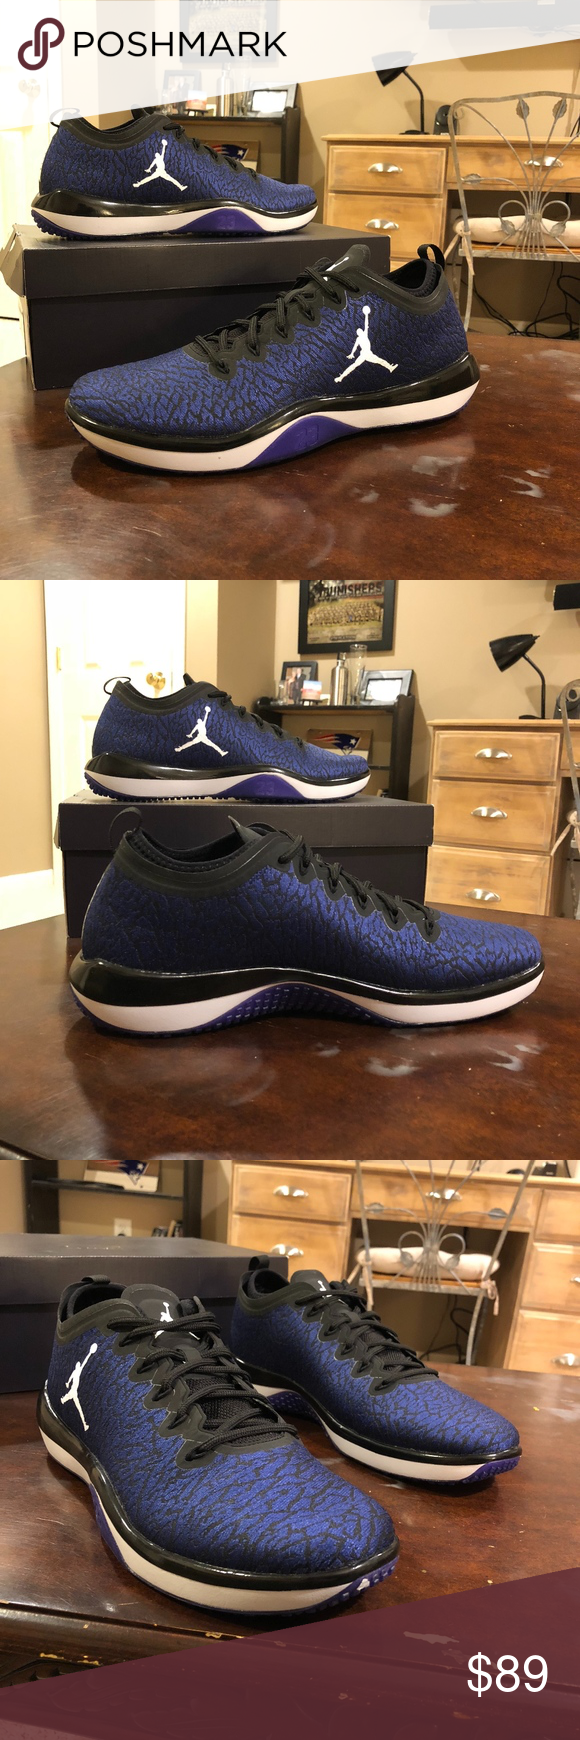 7561f63038a Jordan Trainer 1 Low Brand New In Box Jordan Trainer 1 Low Black White-Concord  845403-003 Multiple Sizes Available Retails For  120.00 Comes in Black  Jordan ...